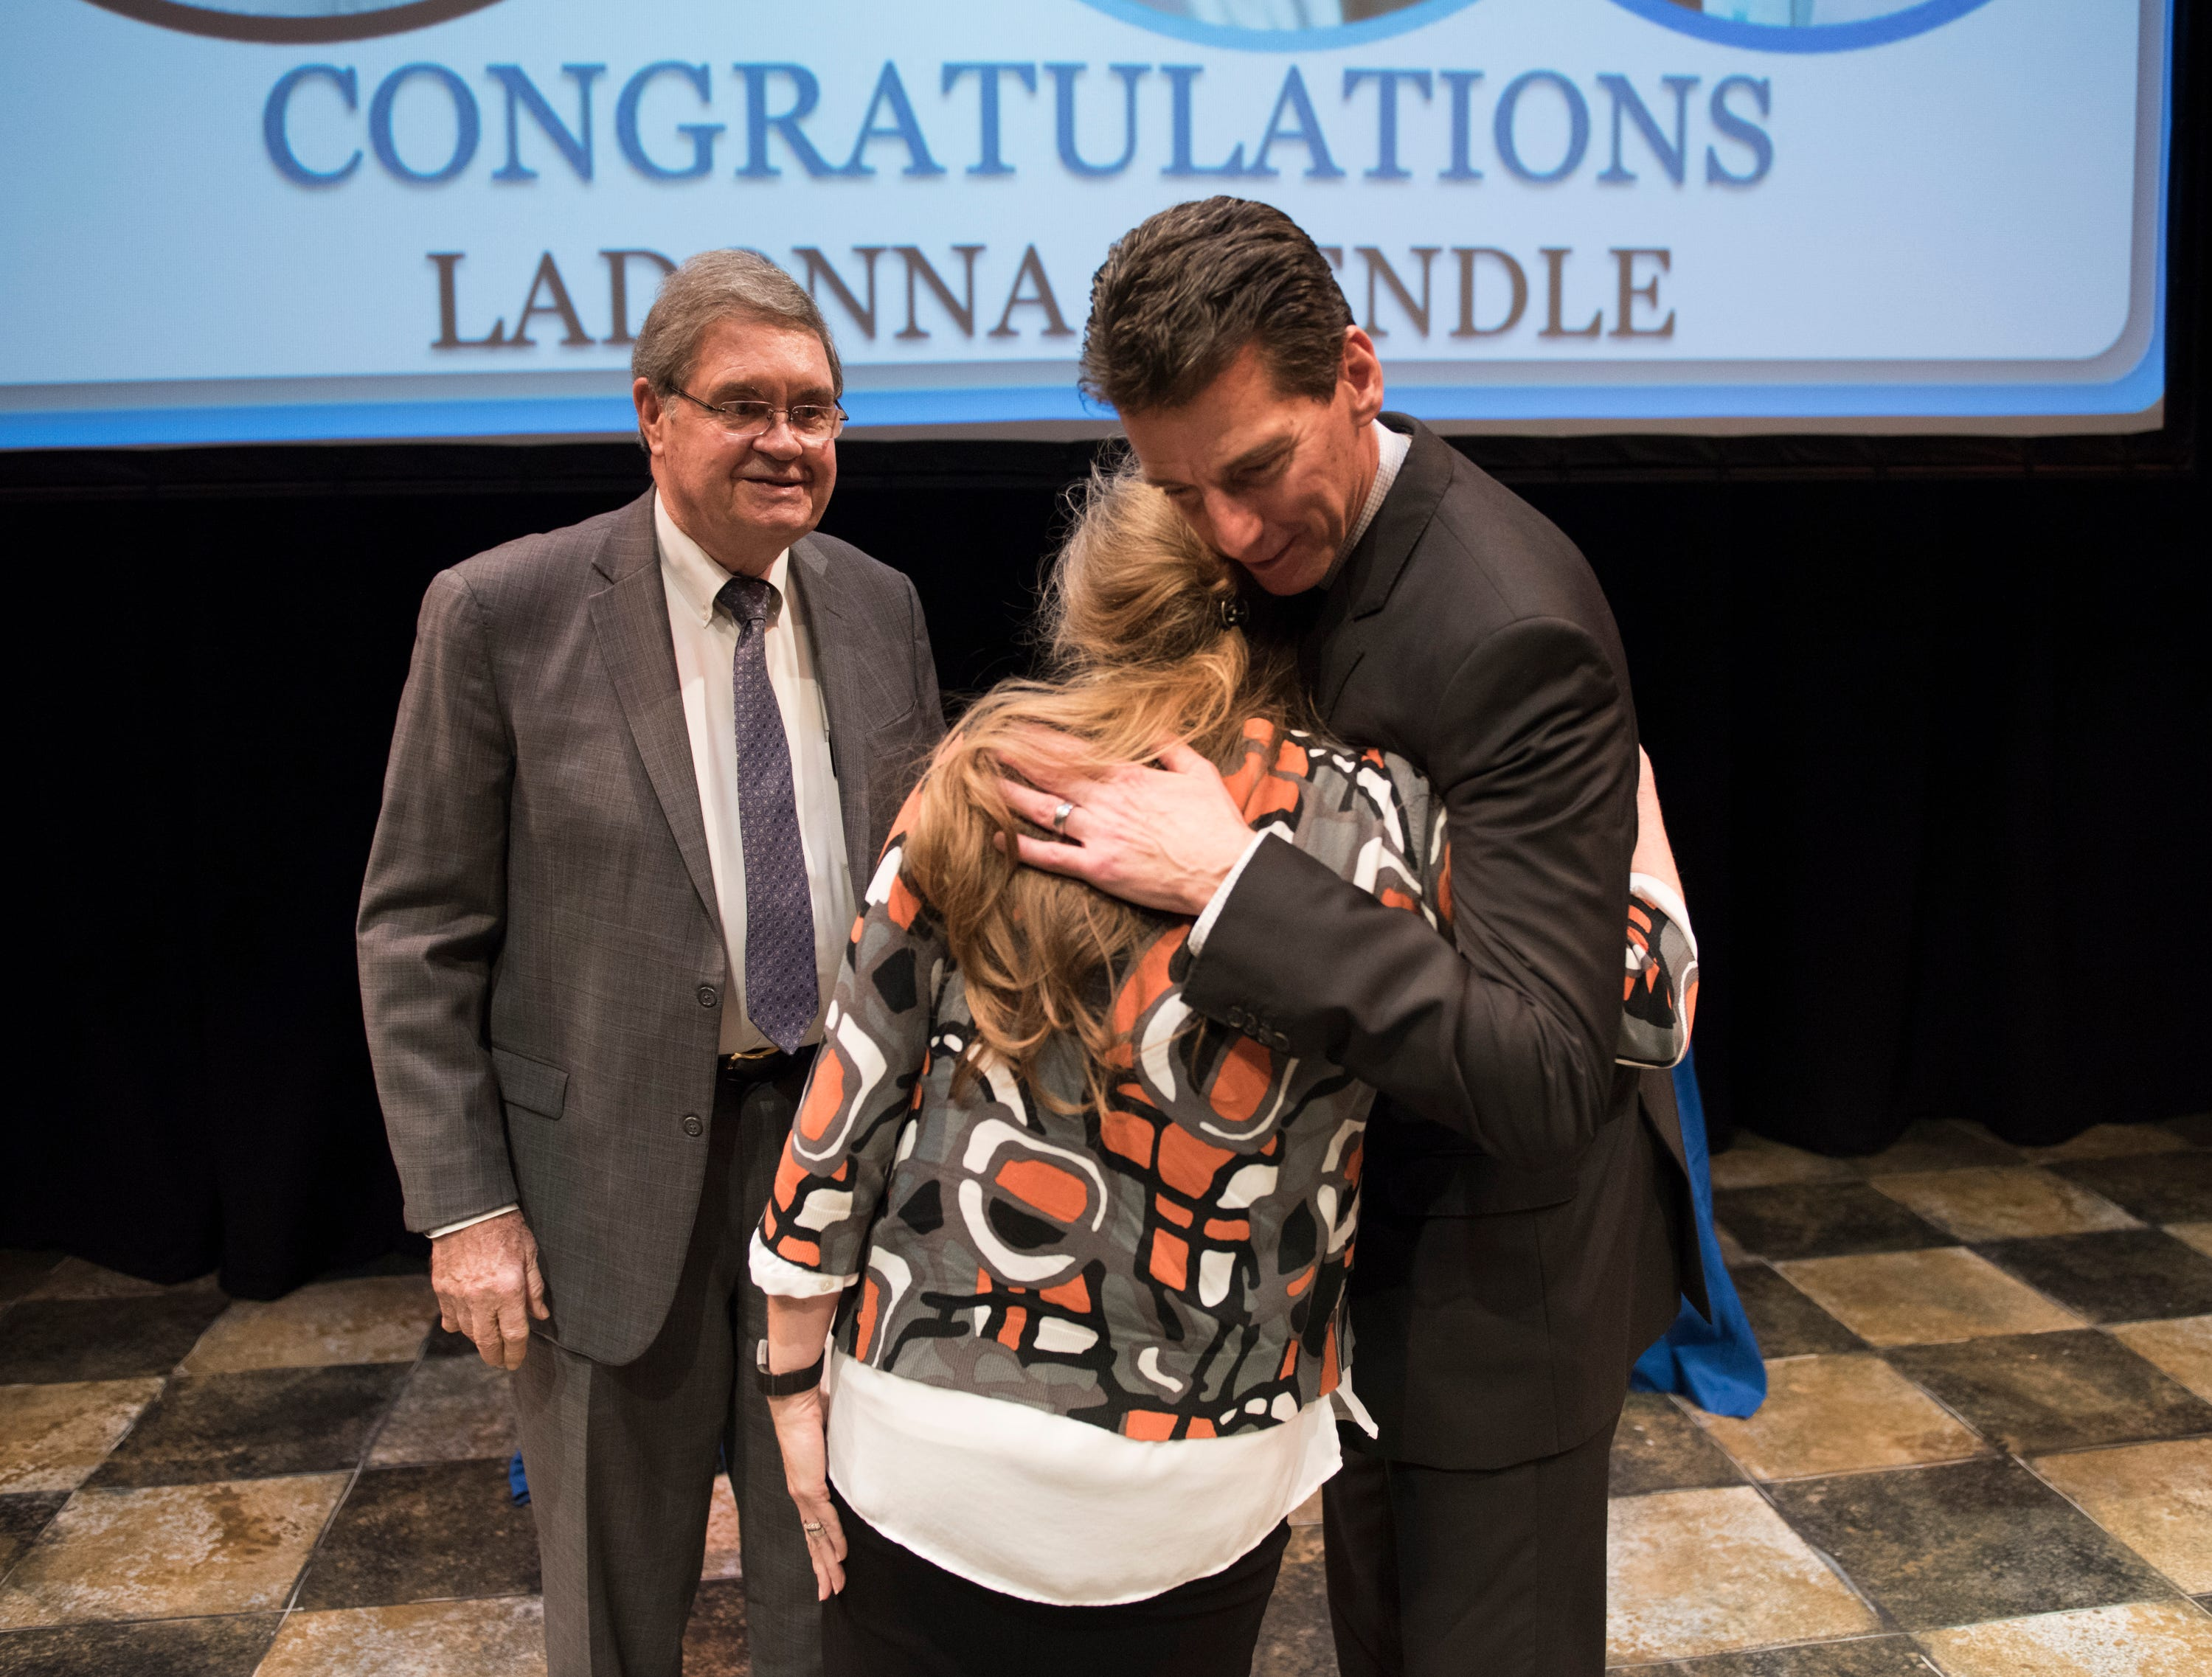 LaDonna Brendle hugs Montgomery Advertiser publisher Michael Galvin as she his awarded the Community Hero of the year award during the Community Heroes awards ceremony at Alabama Shakespeare Festival in Montgomery, Ala., on Tuesday, Jan. 8, 2019.